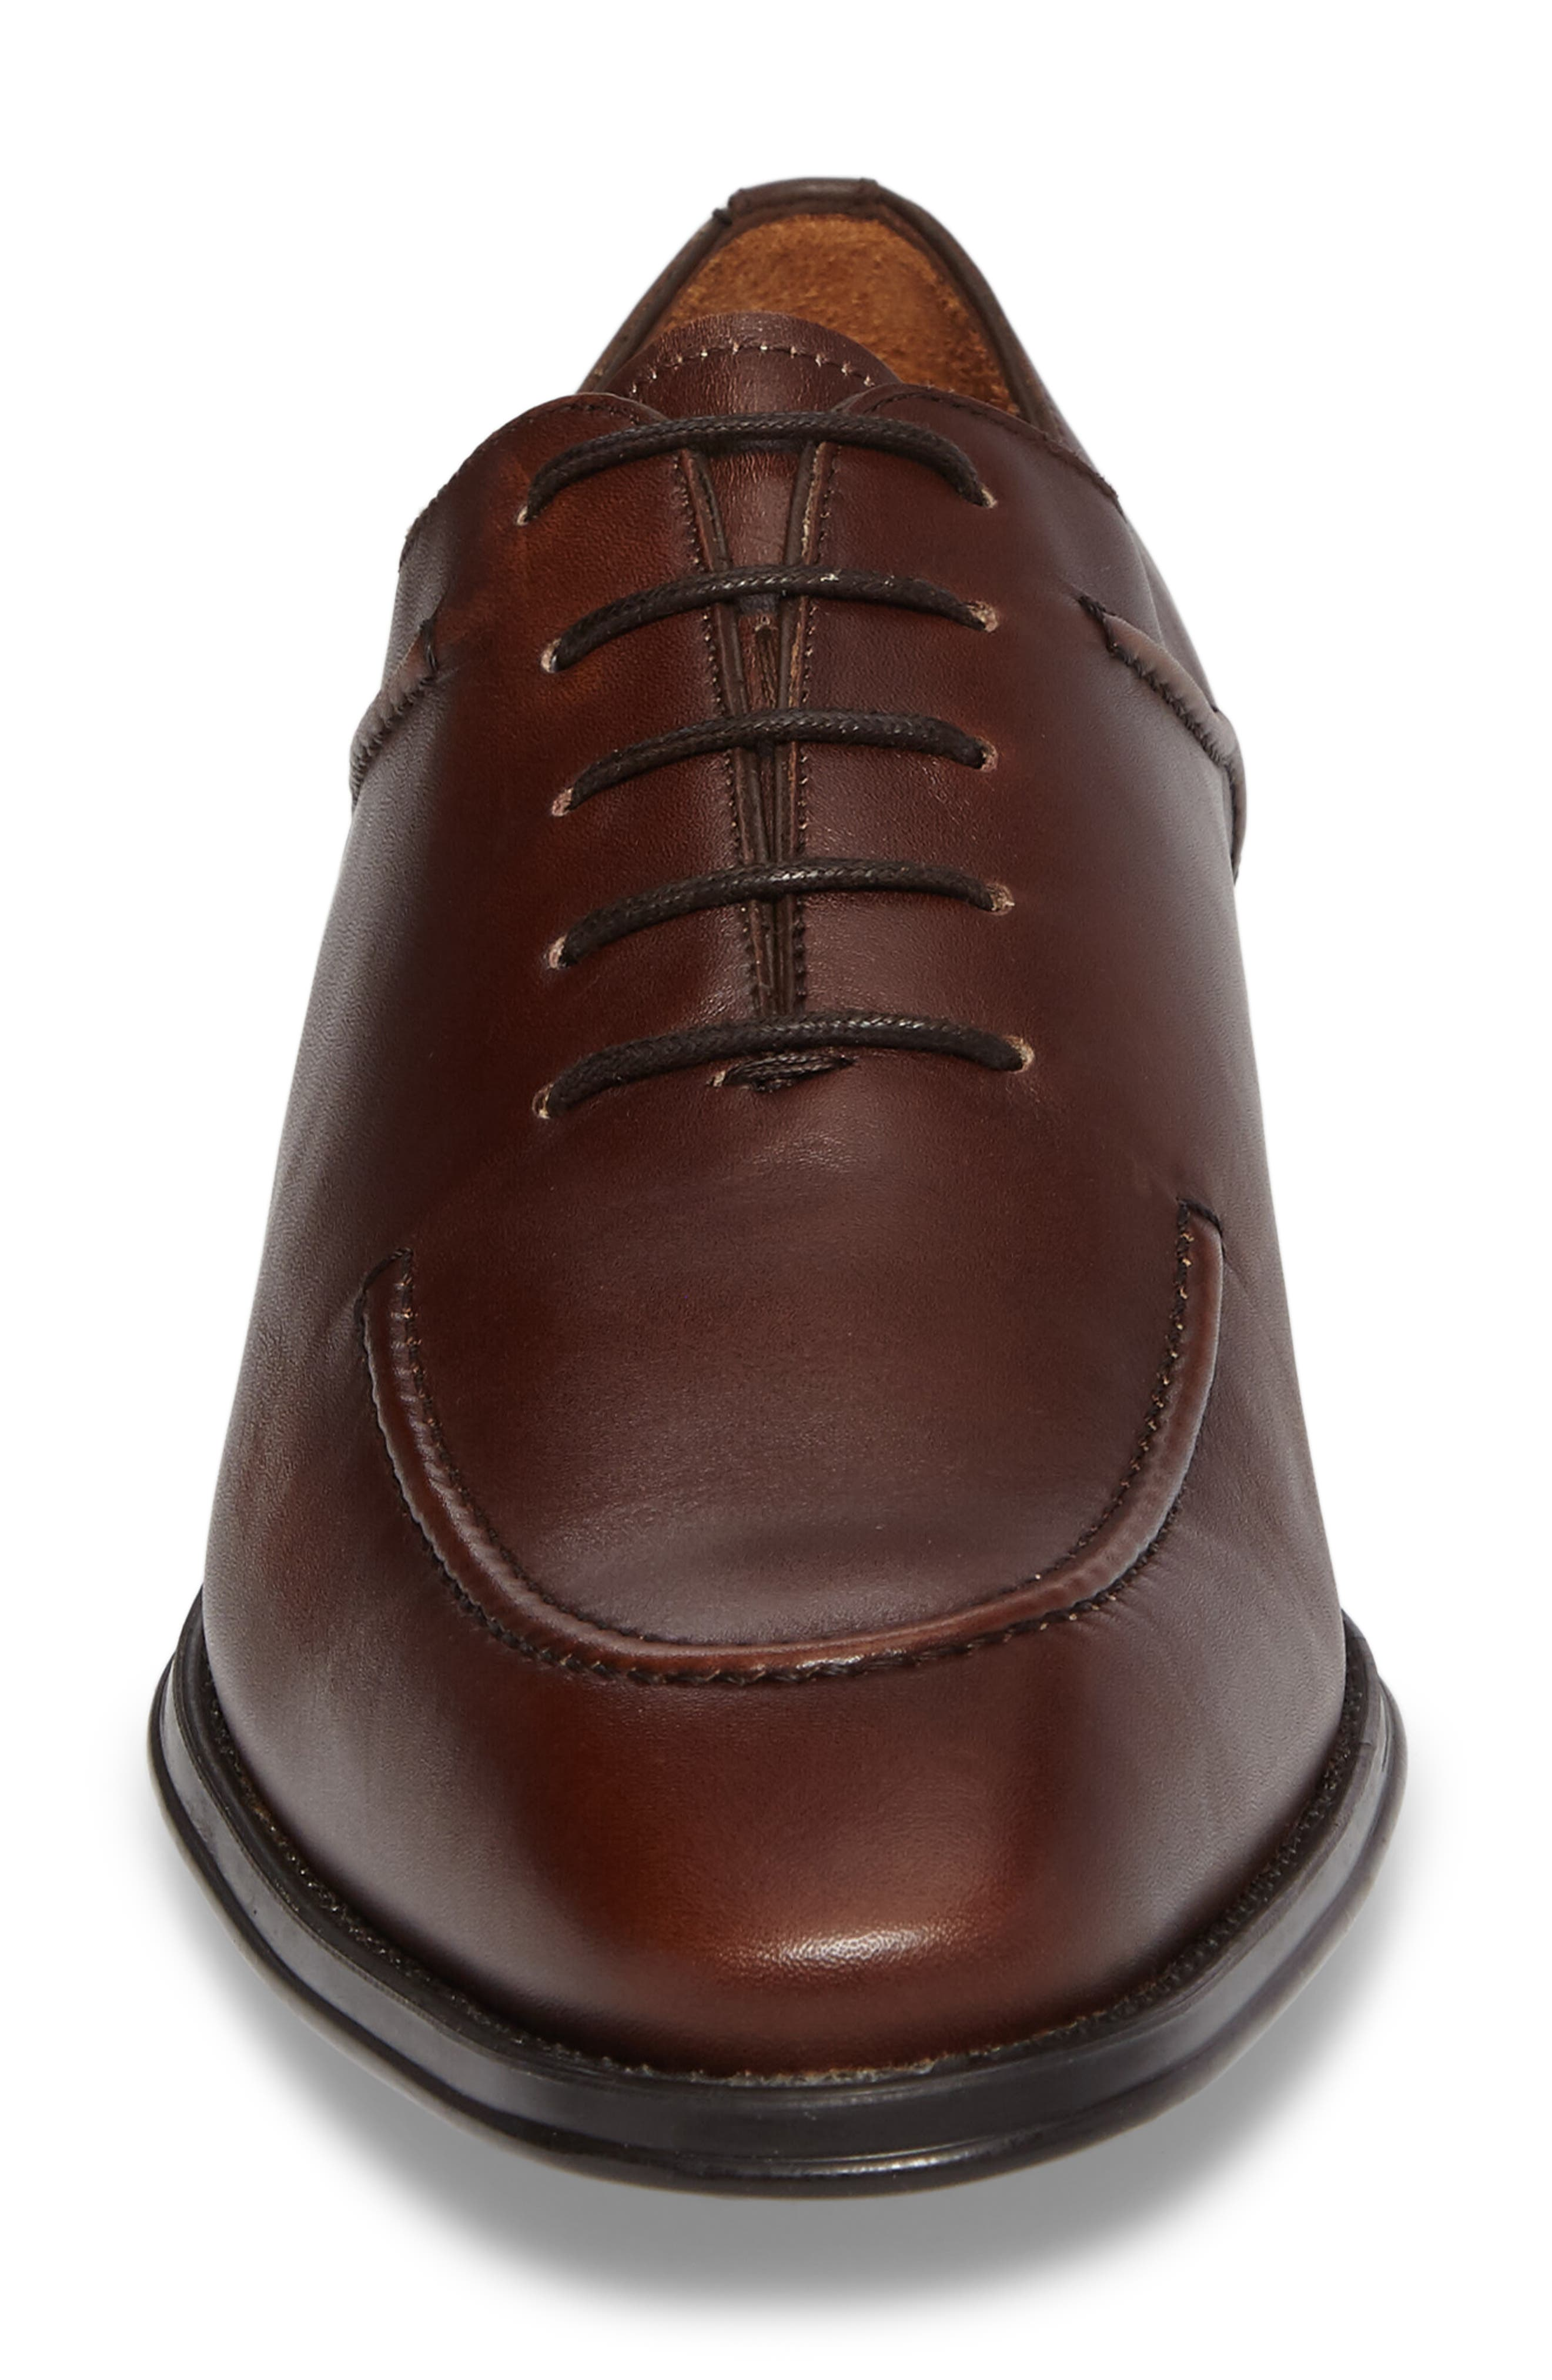 Velez Moc Toe Oxford,                             Alternate thumbnail 4, color,                             Brown Leather